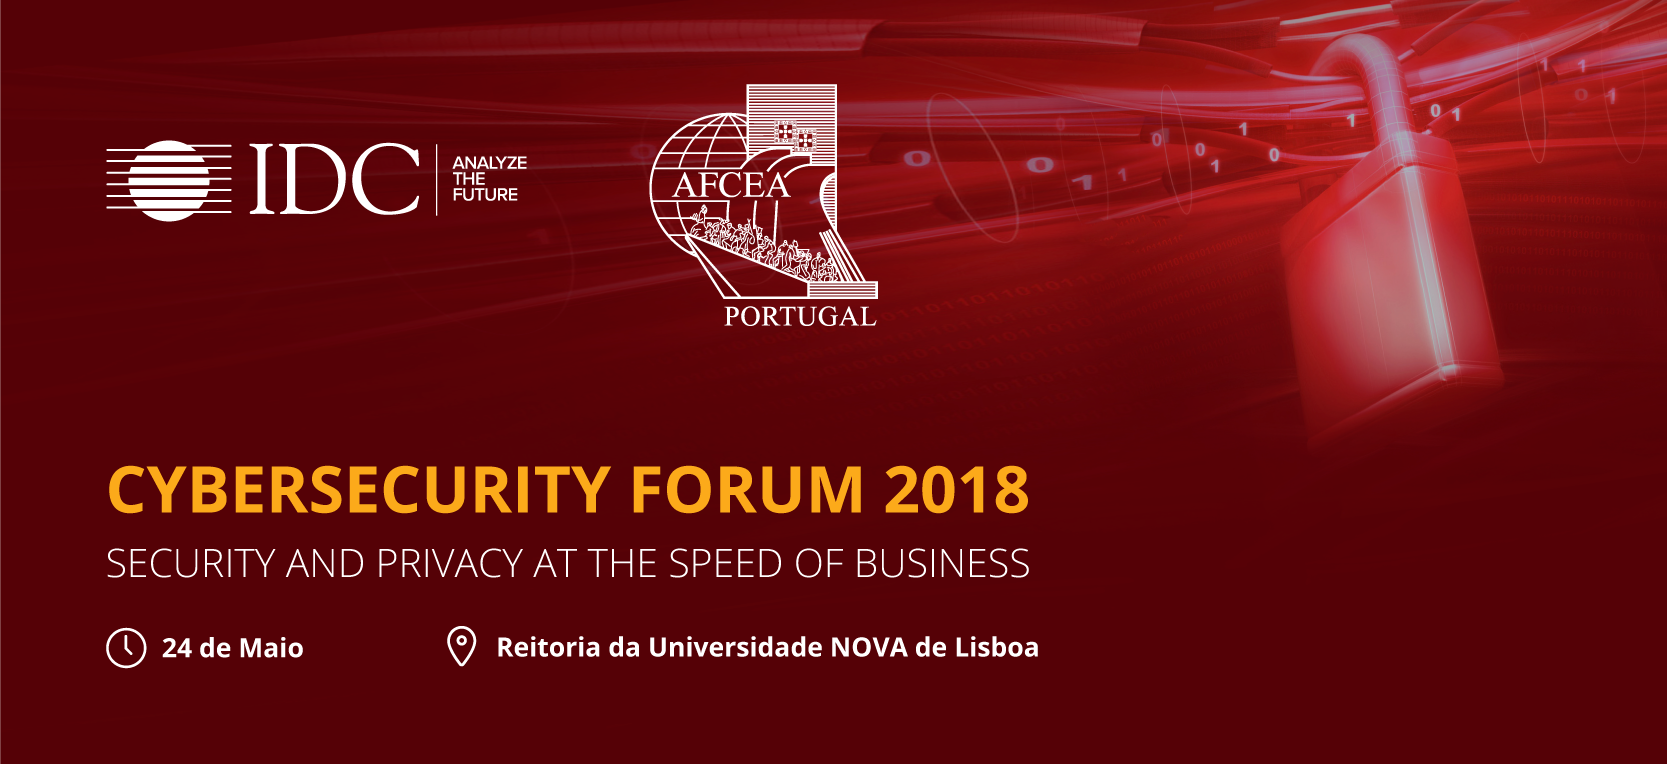 IDC CYBERSECURITY FORUM 2018